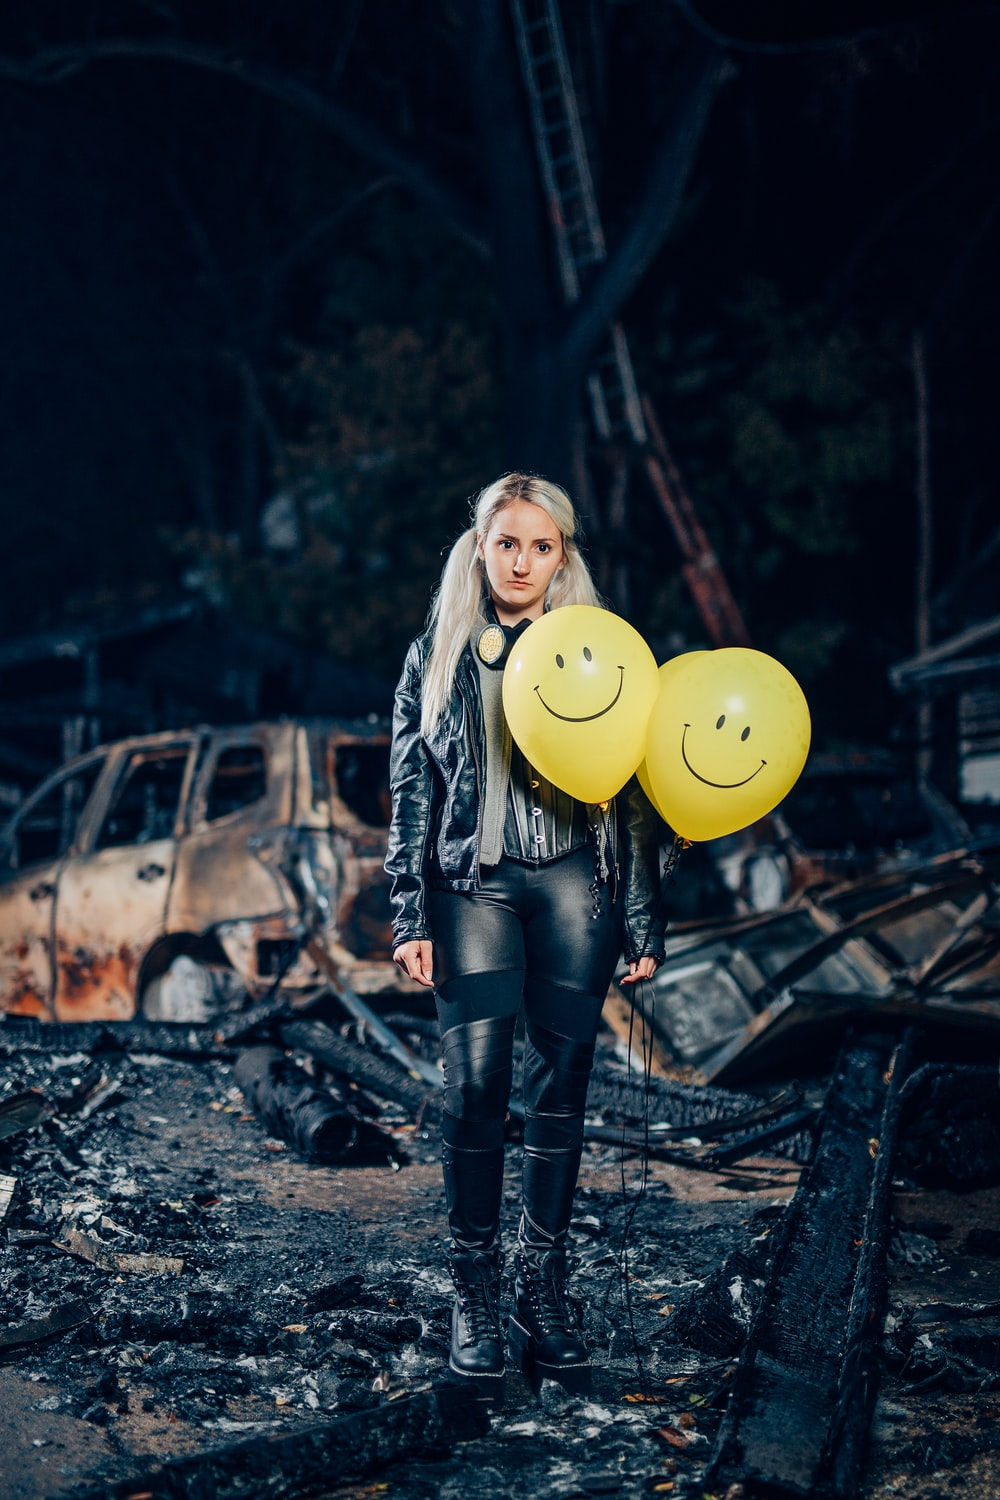 woman in black leather jacket holding yellow balloon